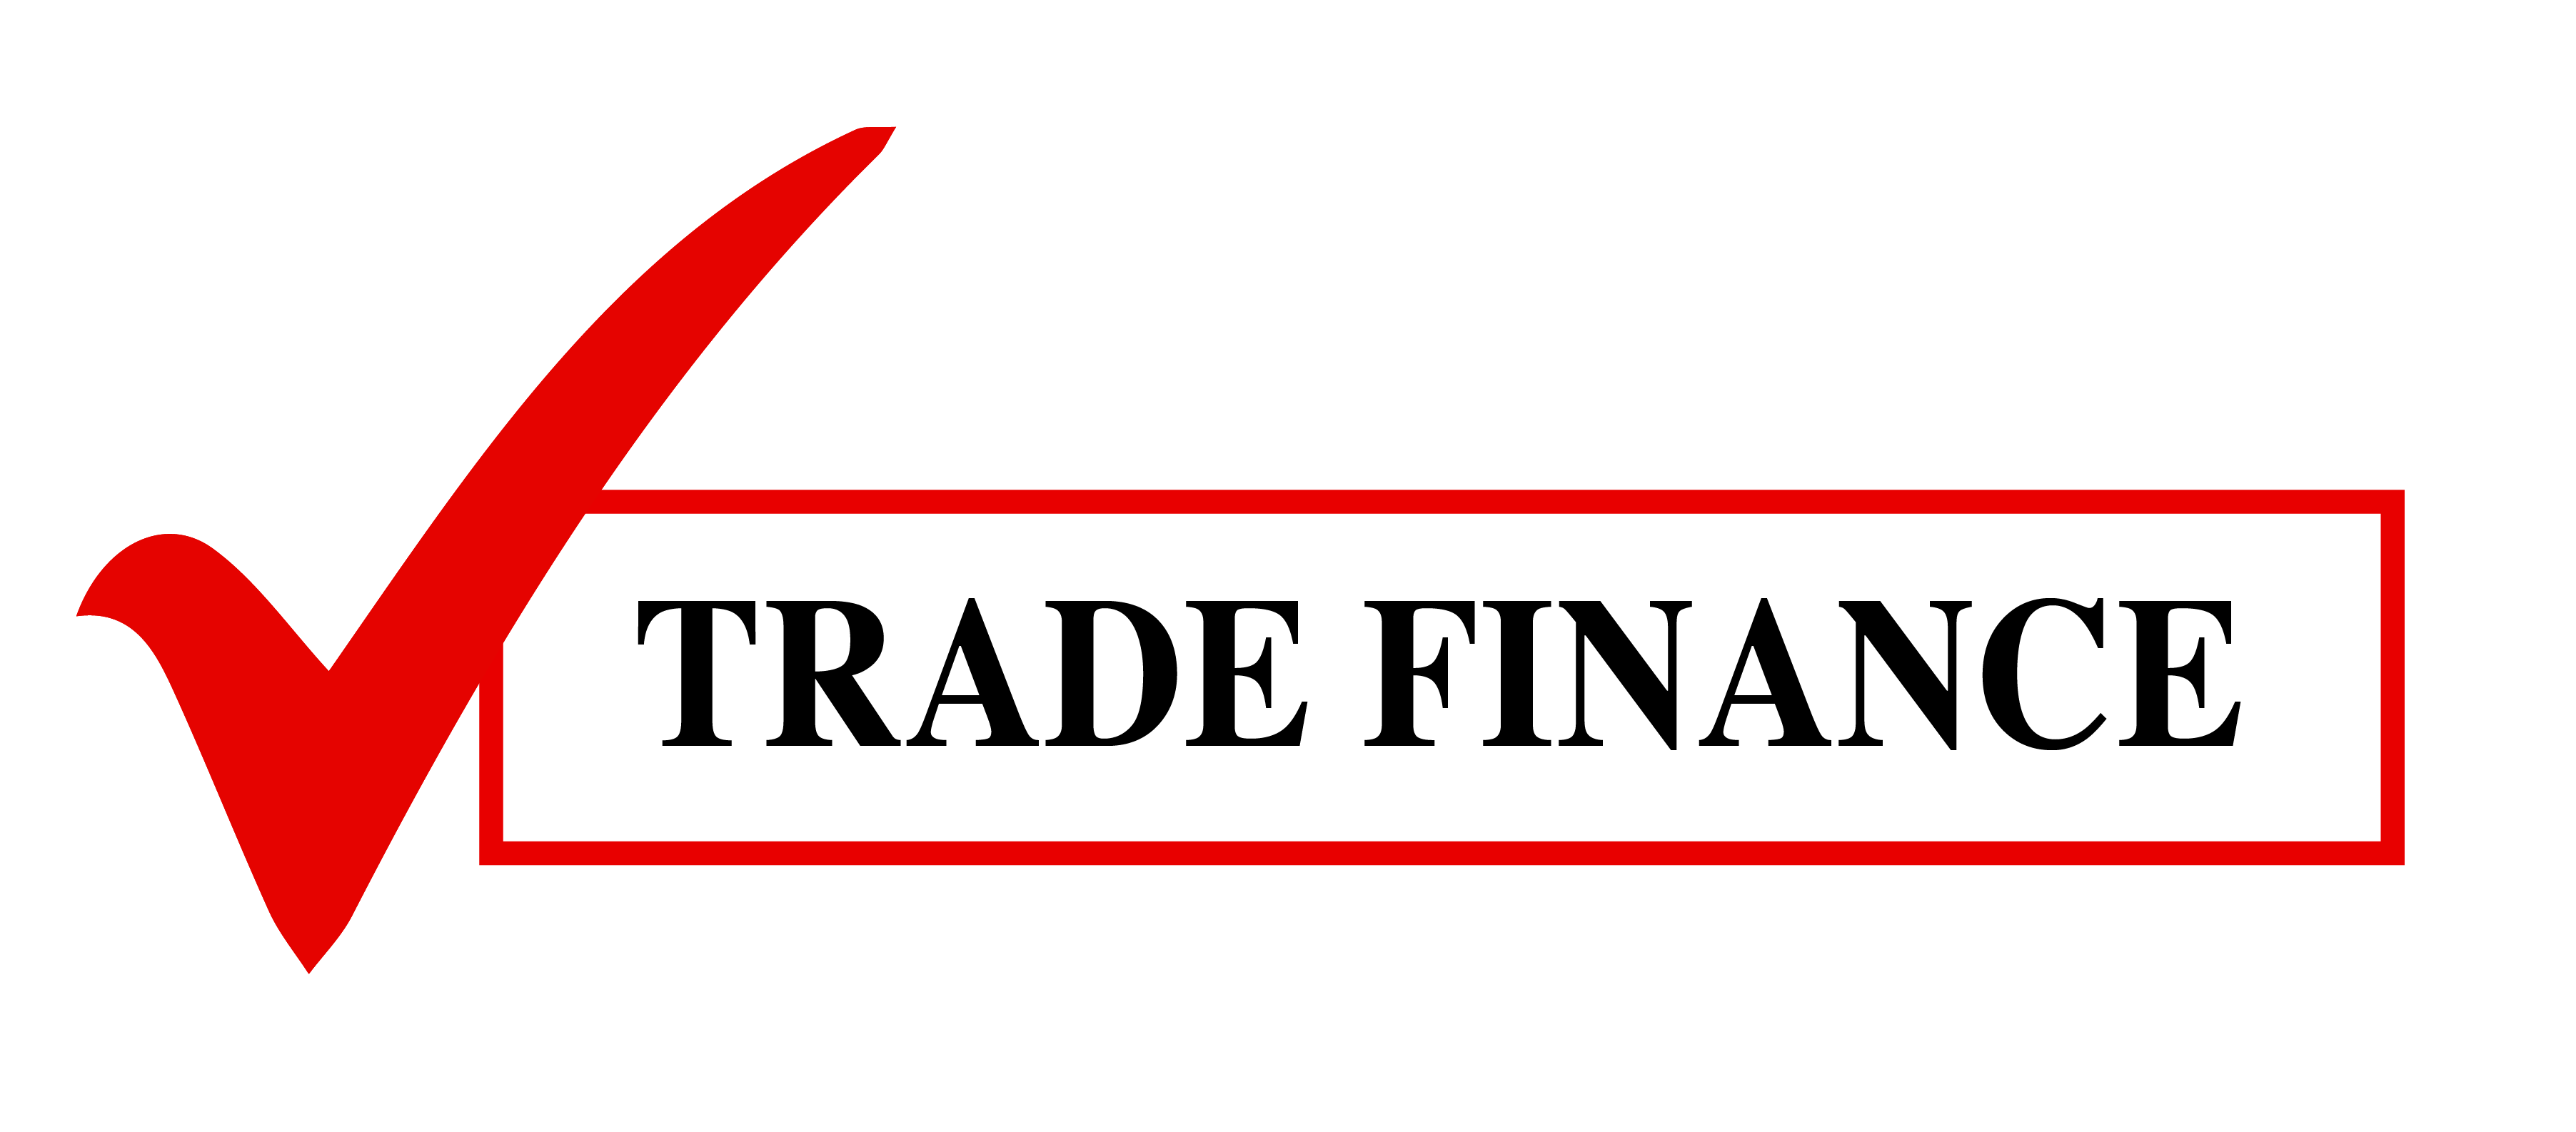 Trade Finance from Trade Windows Derby